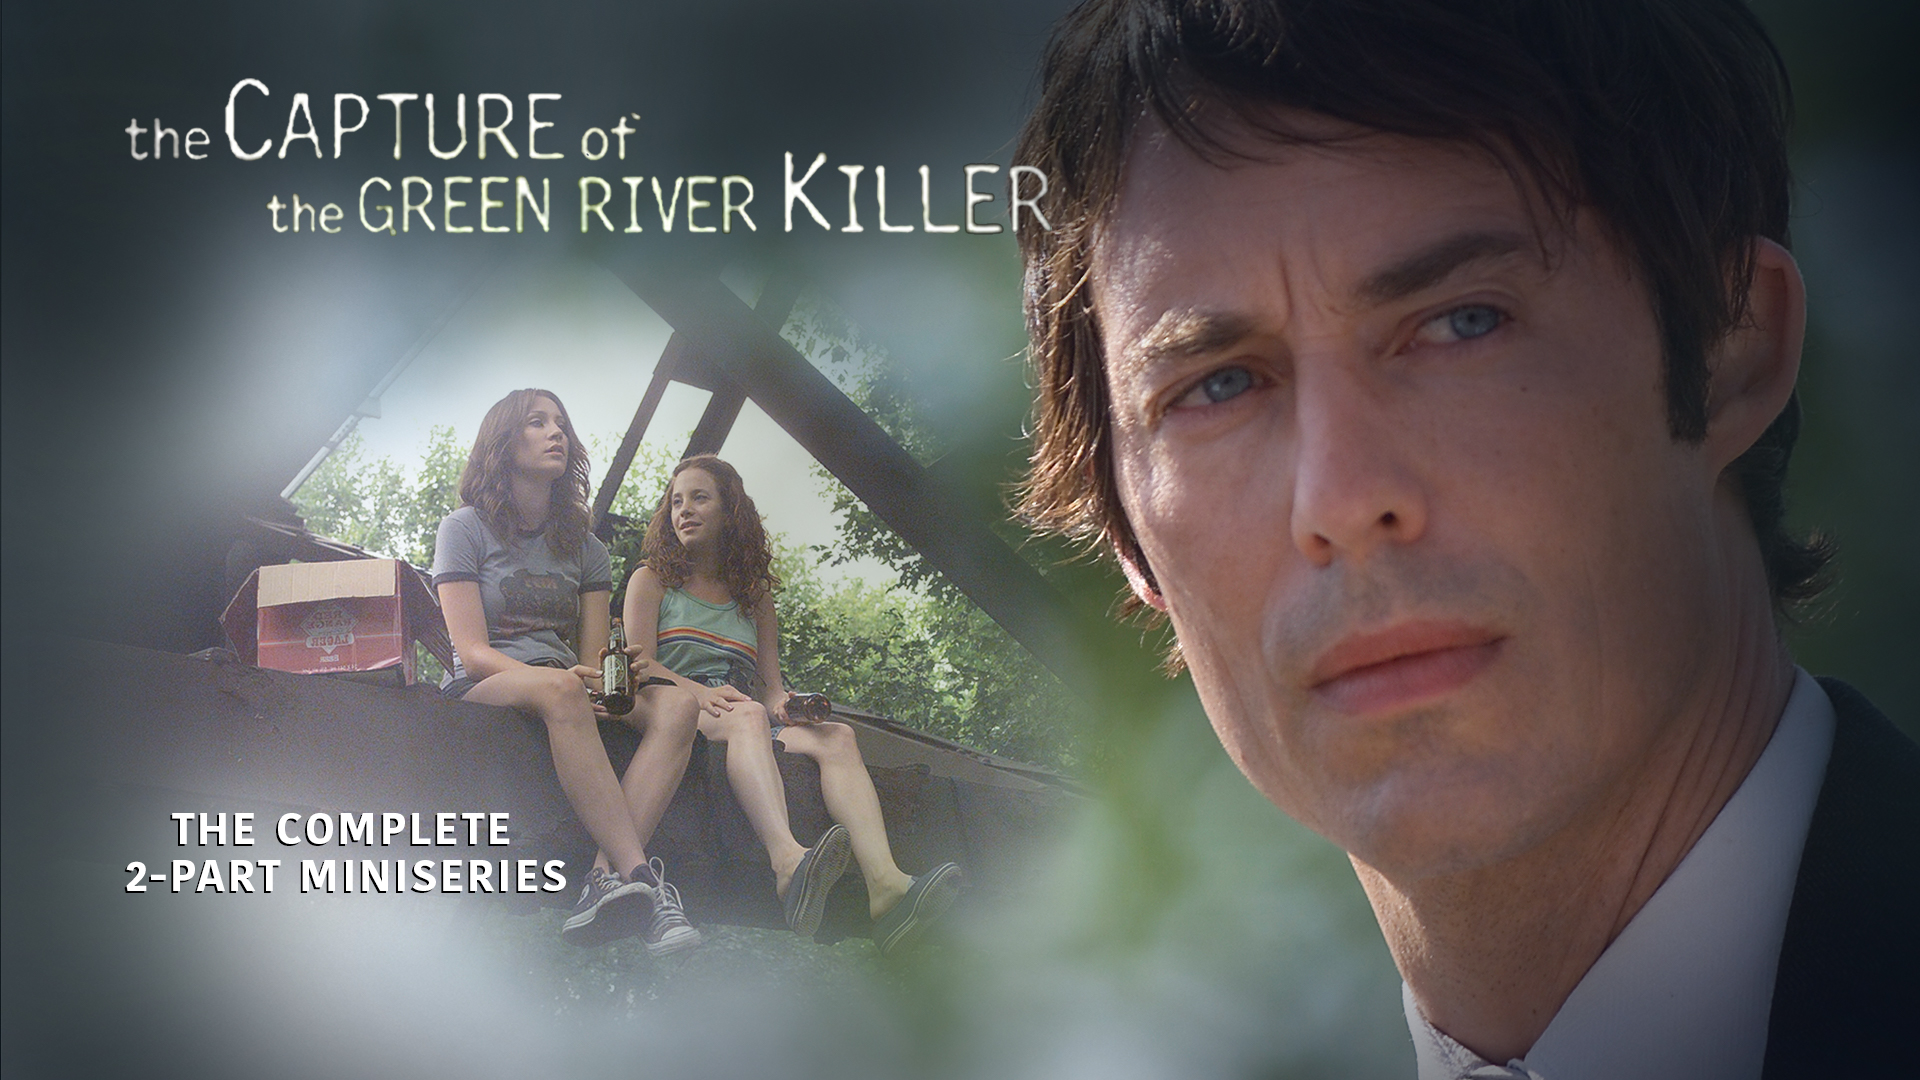 The Capture of the Green River Killer